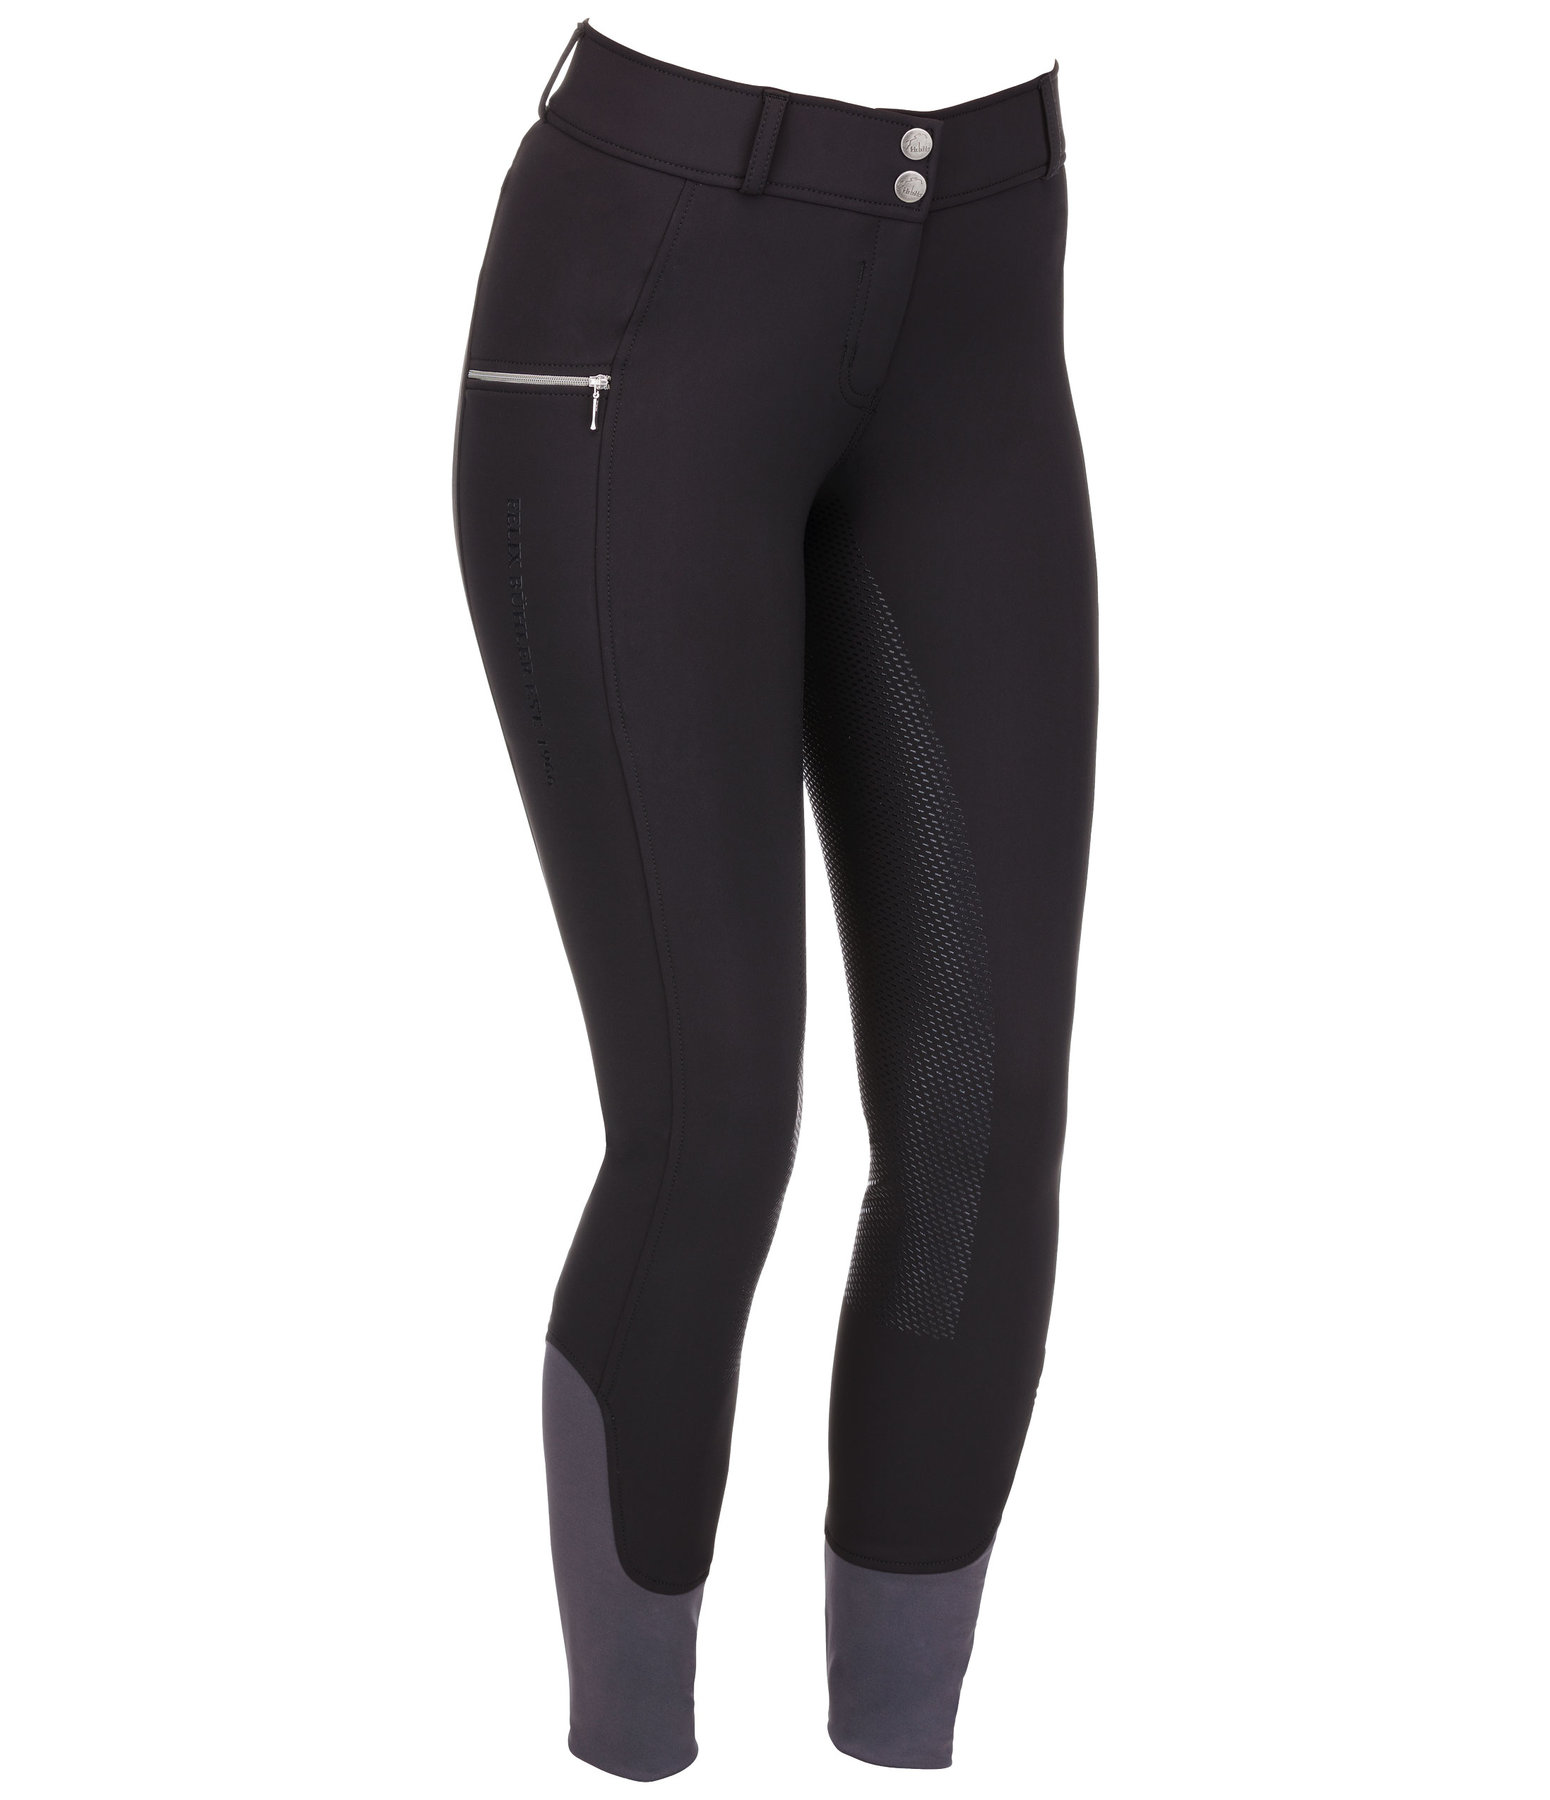 Grip Thermal Pro Full-Seat Breeches Bonnie